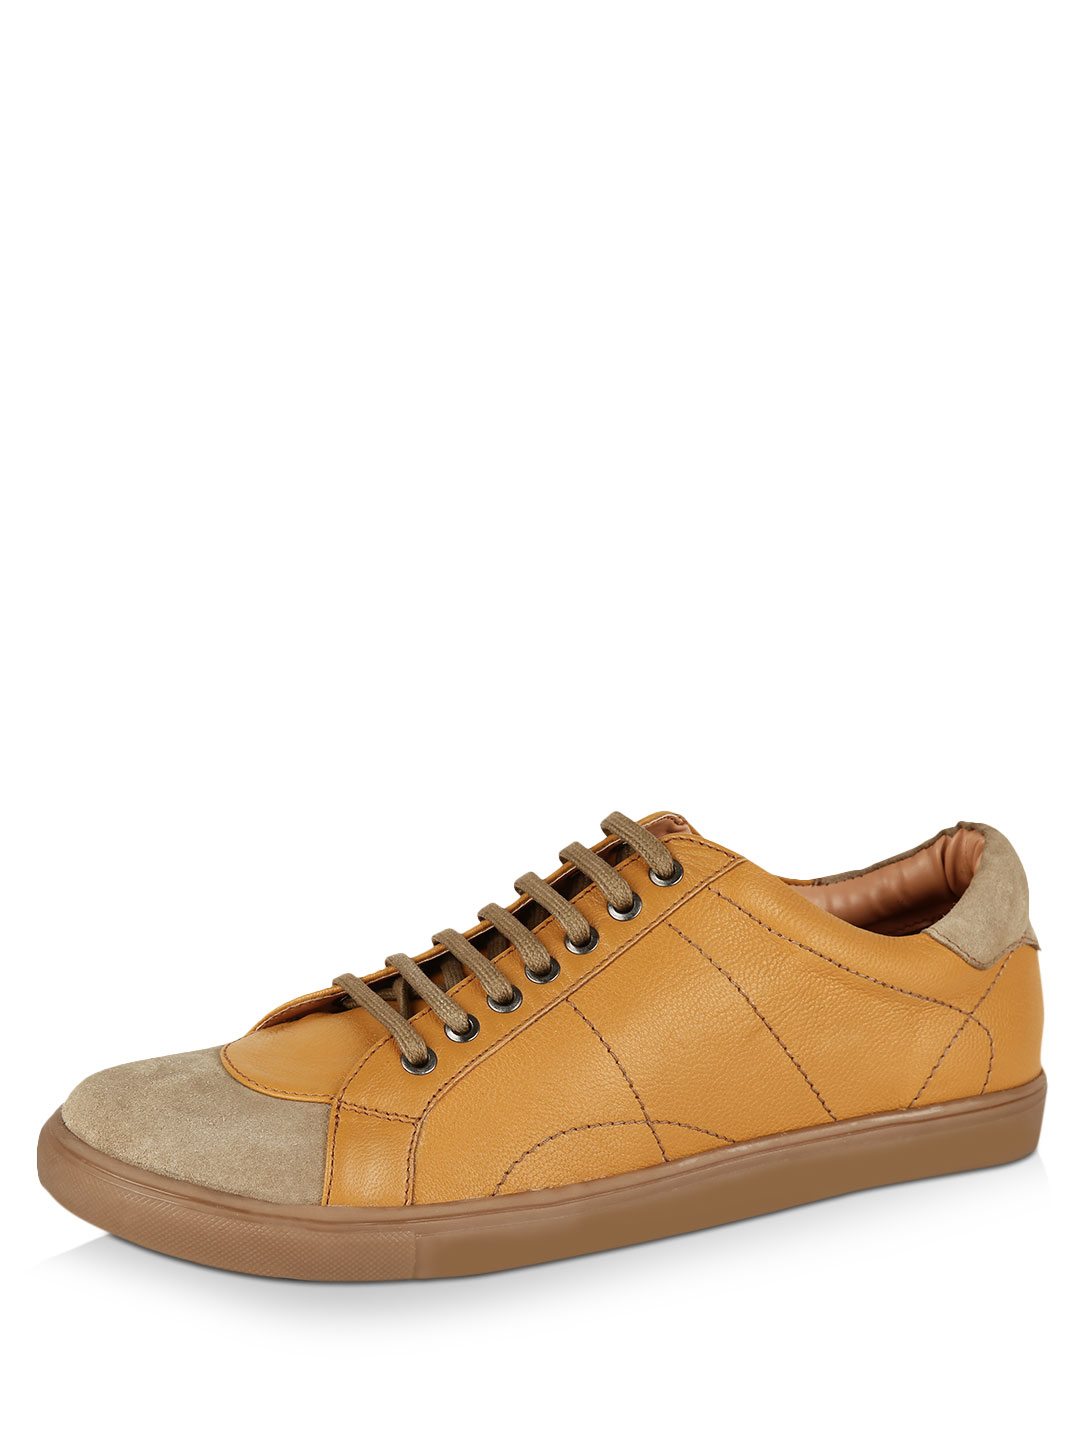 Griffin Camel Mix Media Lace-up Plimsolls 1